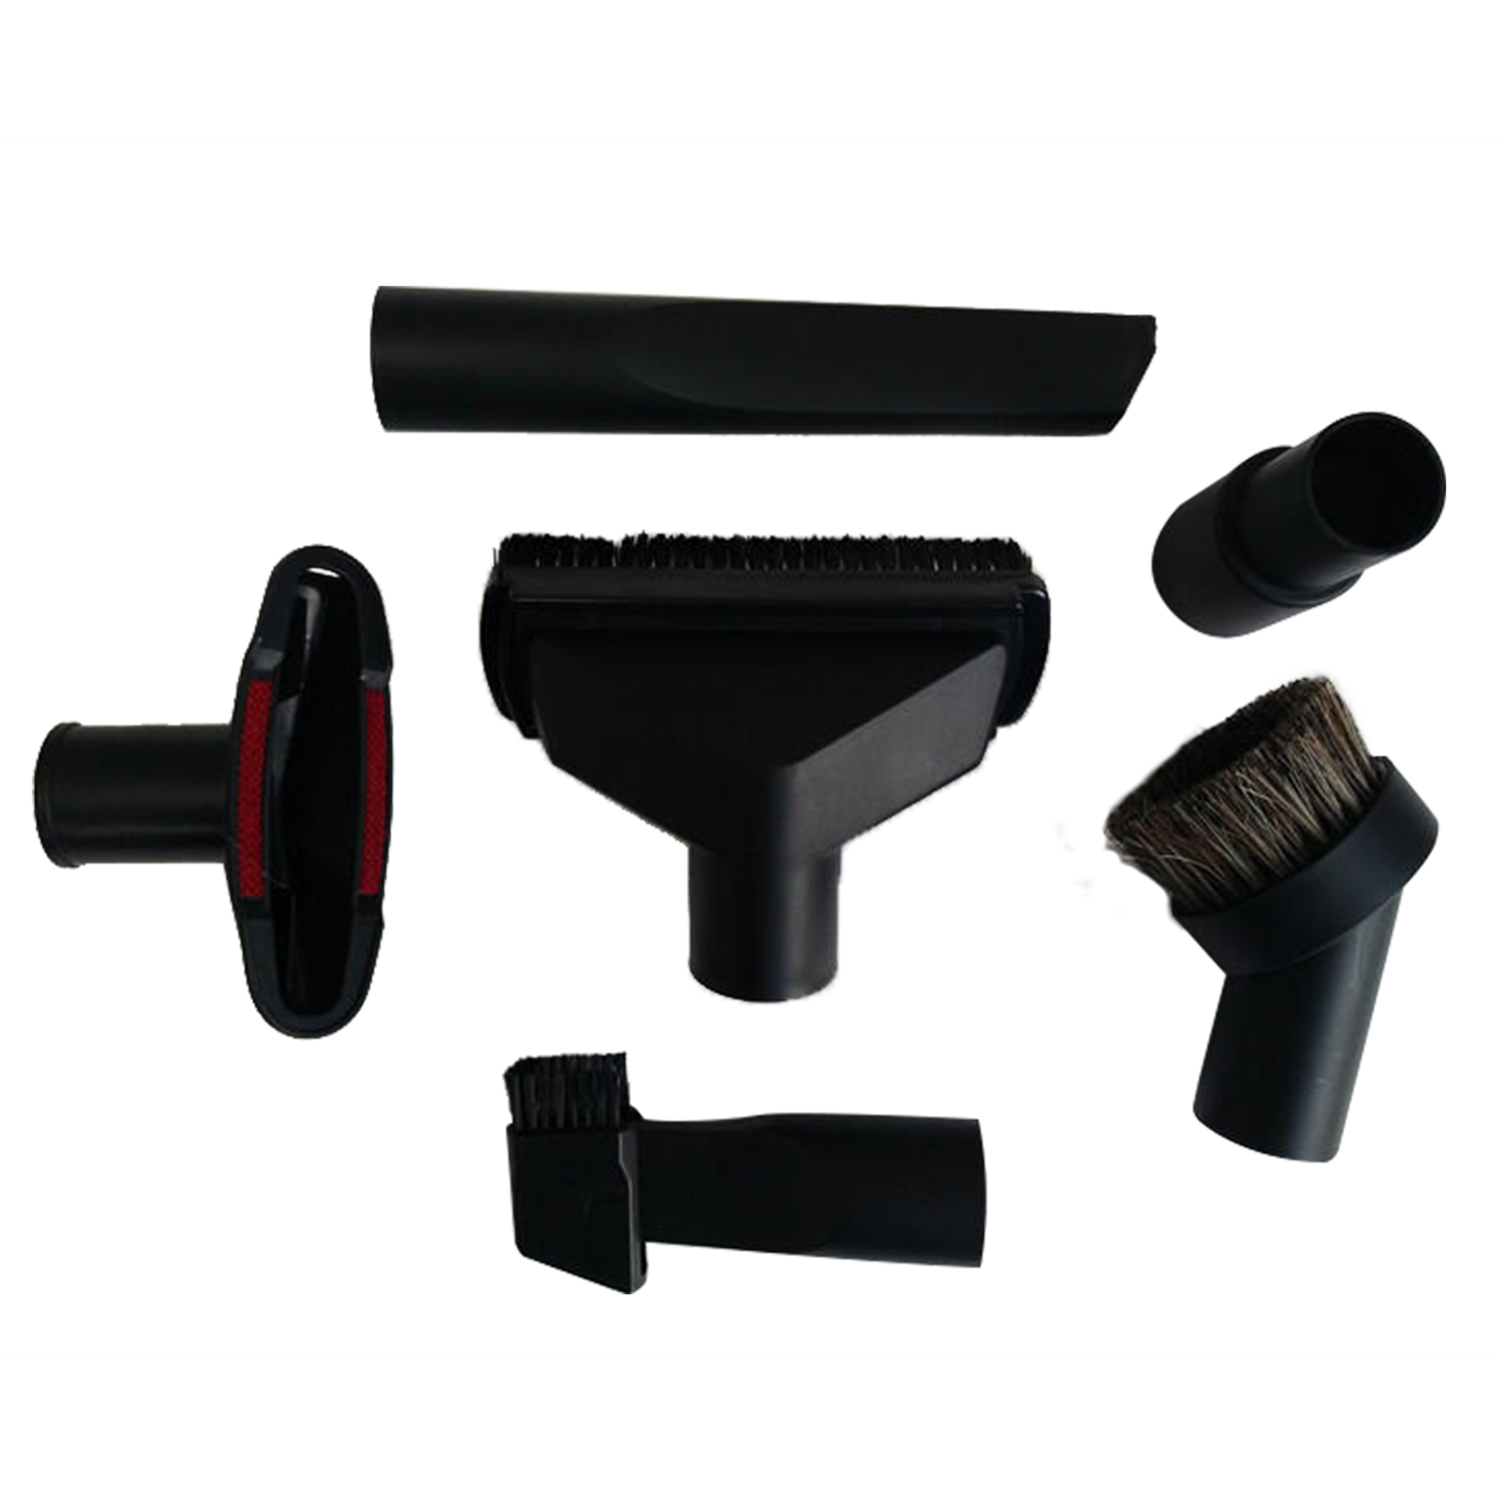 SANQ Universal Vacuum Cleaner Accessories Cleaning Kit Brush Nozzle Crevice Tool For 32mm& 35mm Standard Hose 6pcs